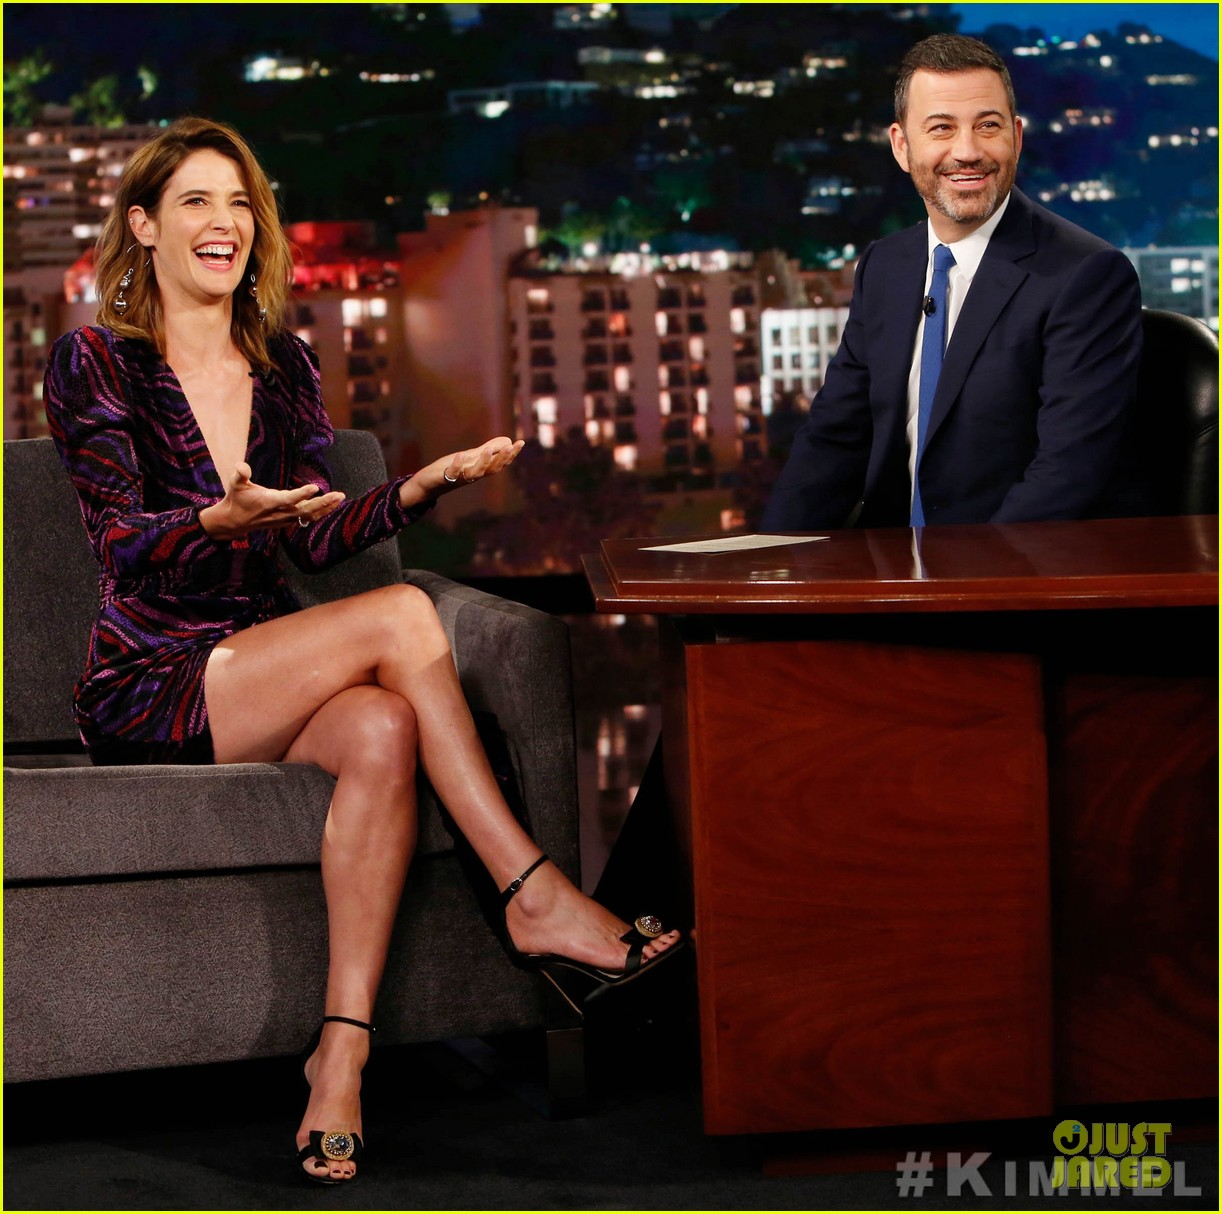 Cobie Smulders Tells Kimmel She Endures Football For Hubby Taran Killam Photo 4360868 Cobie Smulders Pictures Just Jared